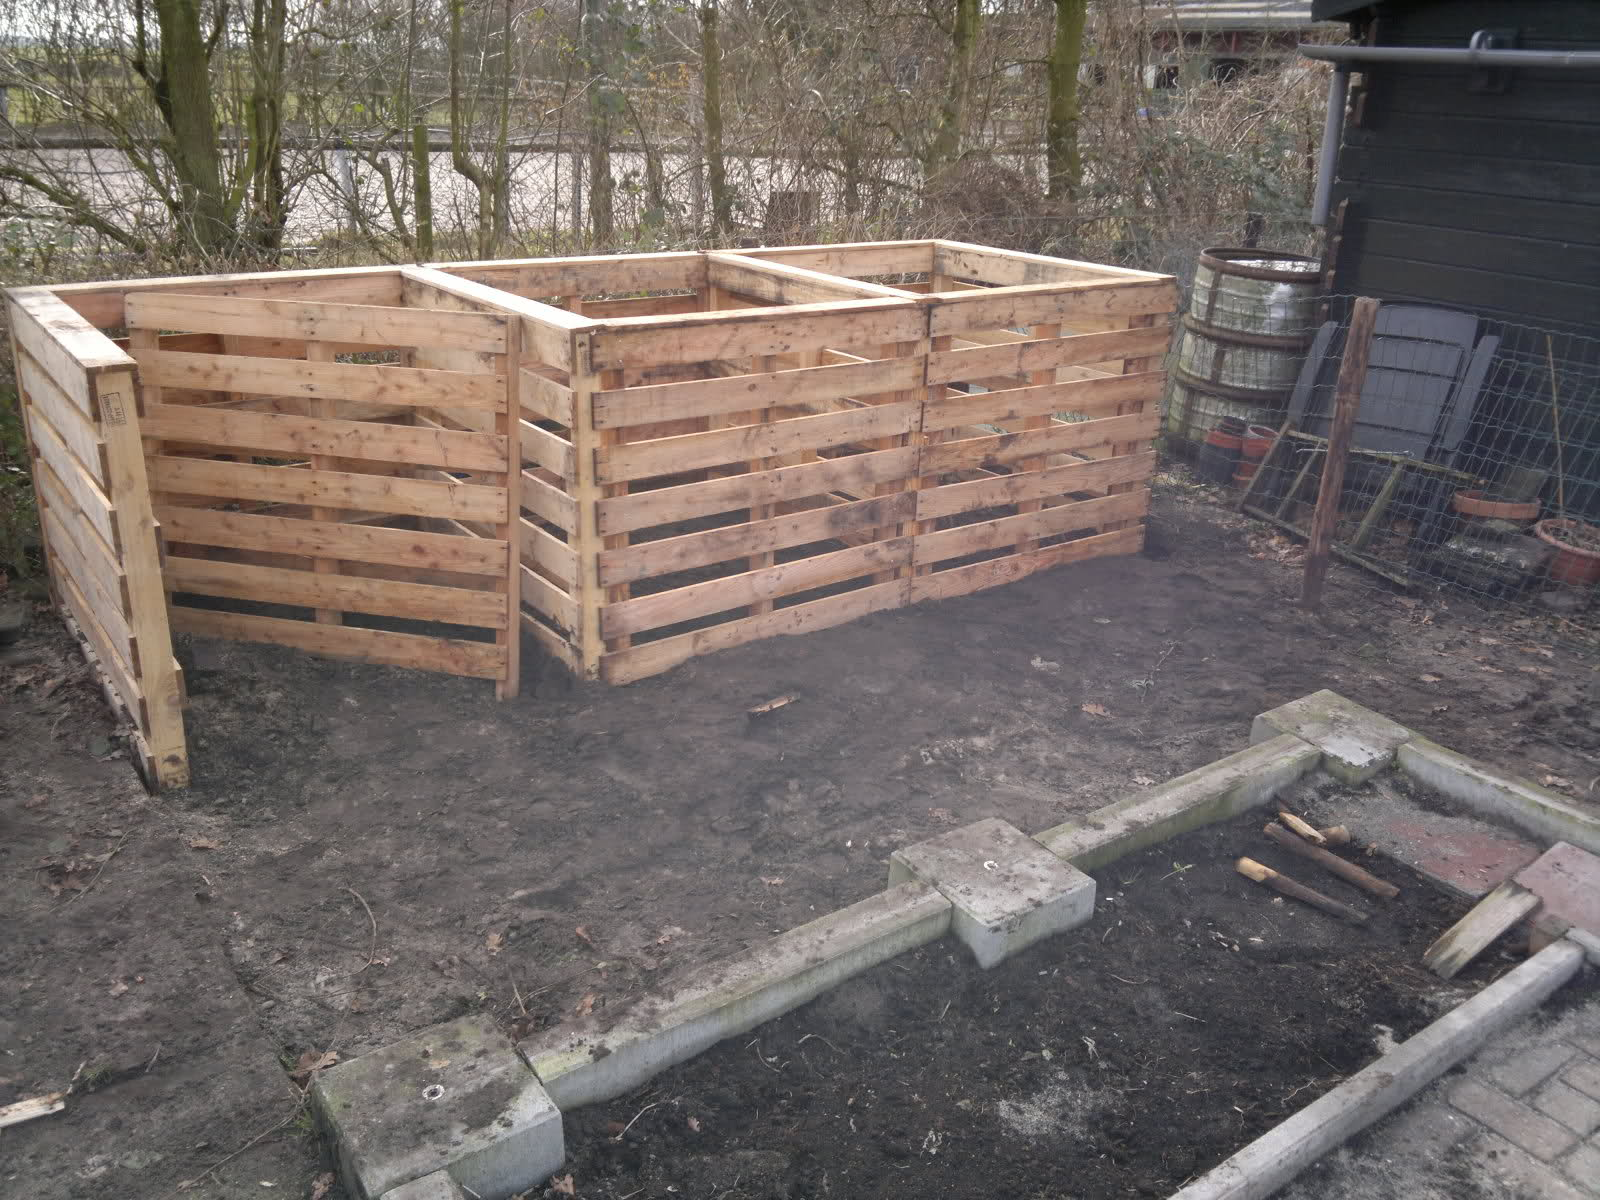 Compostbak Hout Composthoop Moormannen